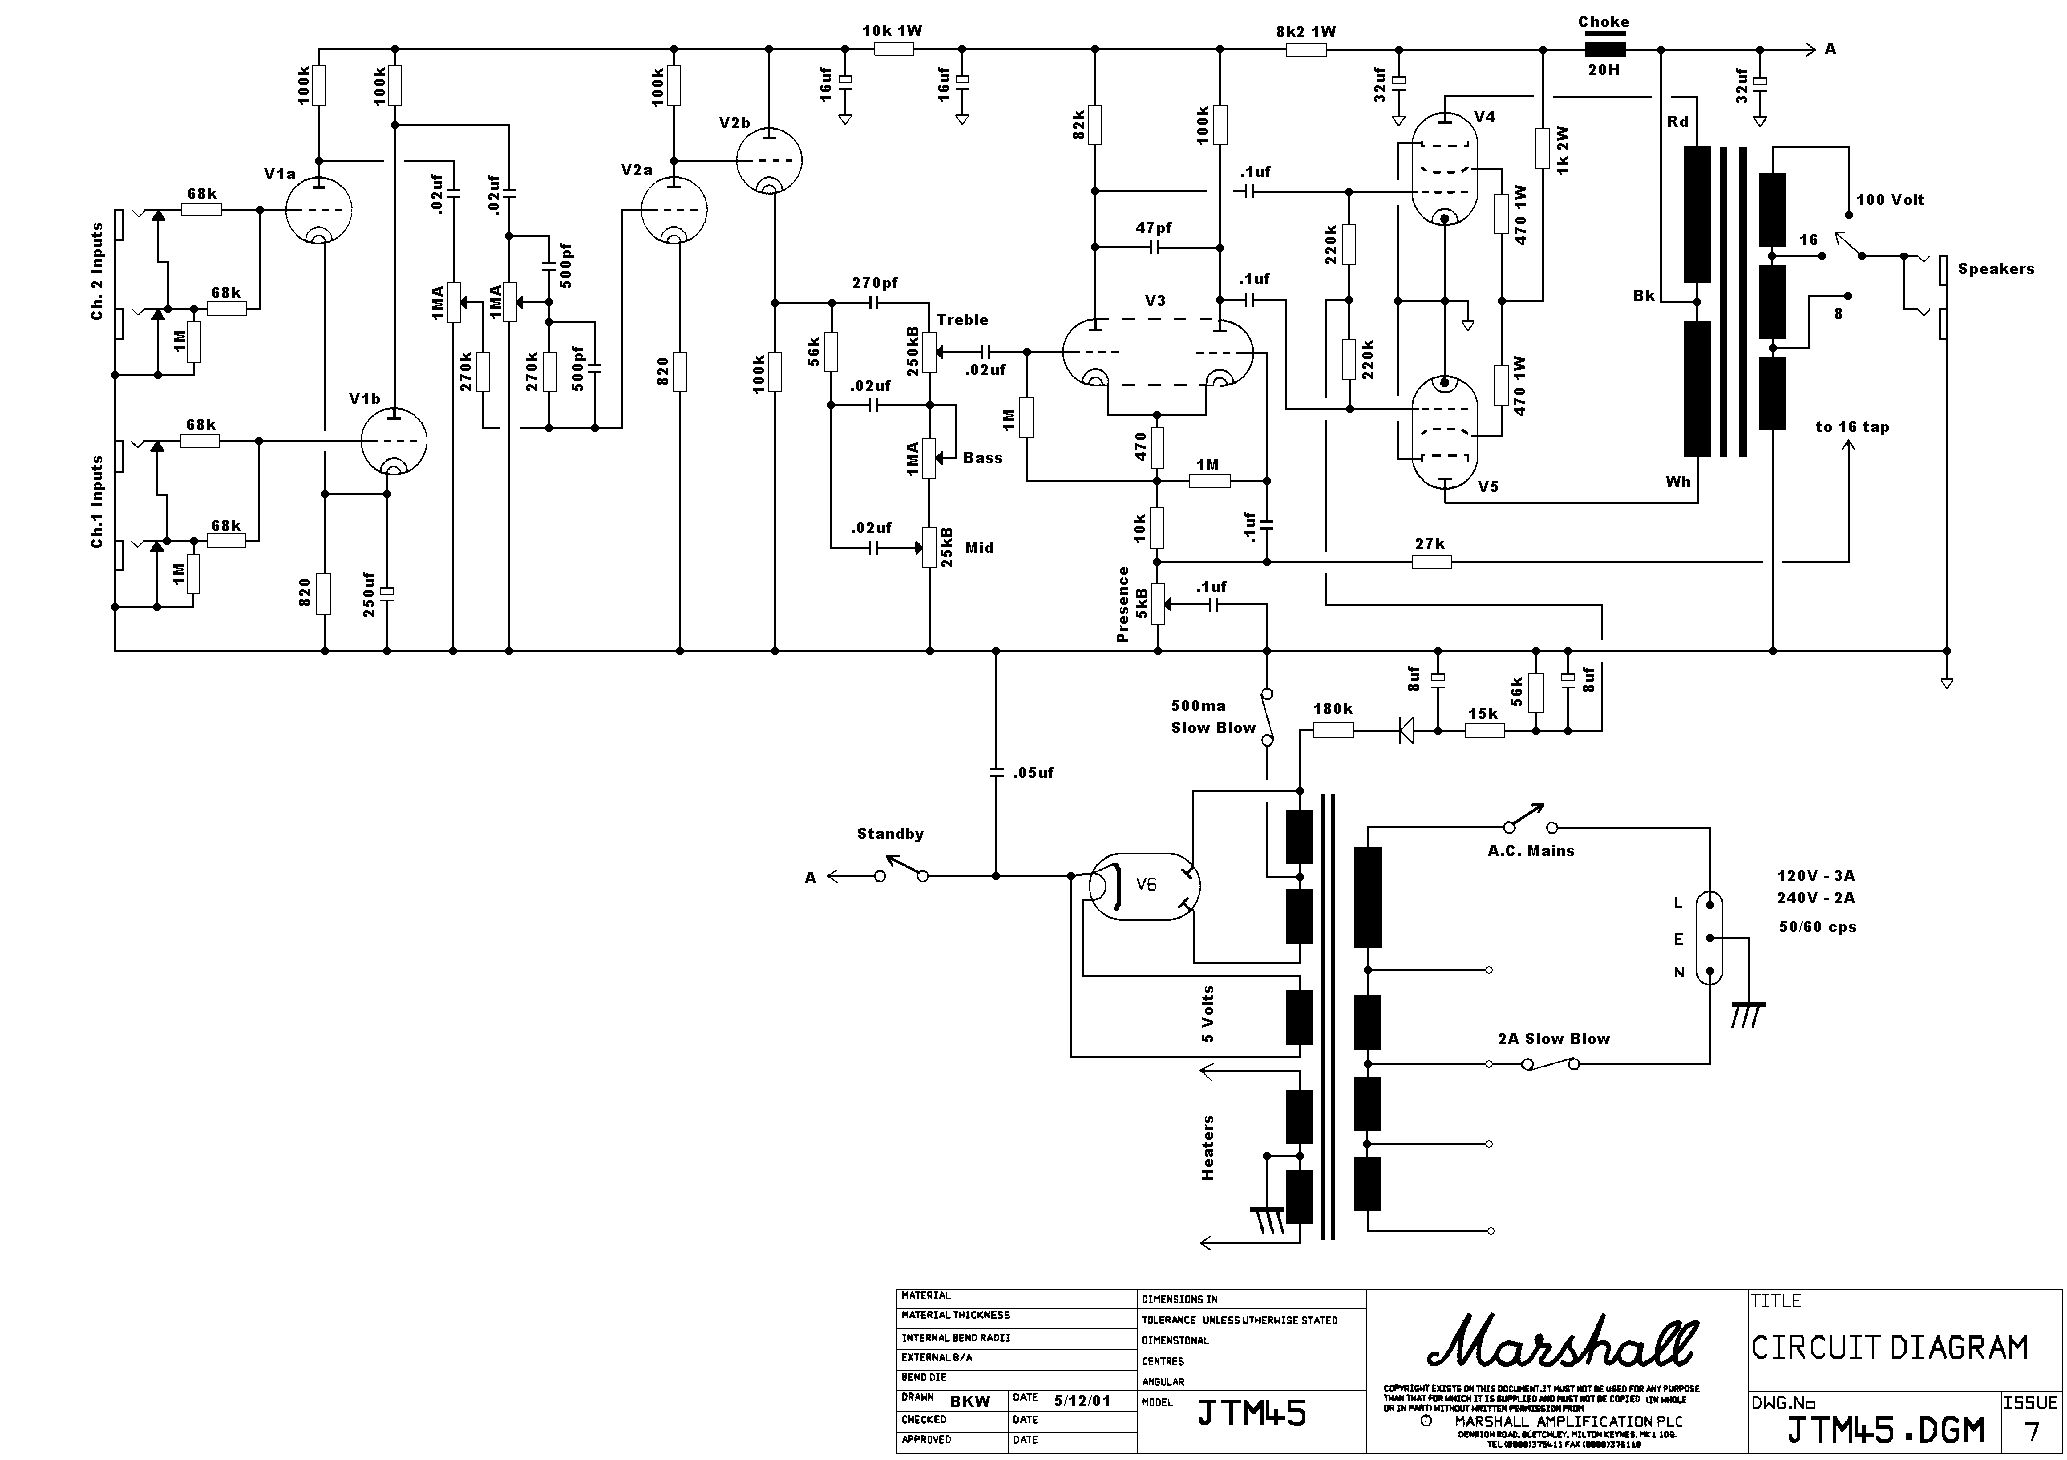 Understanding the basic tube amp circuit(The Marshall JTM